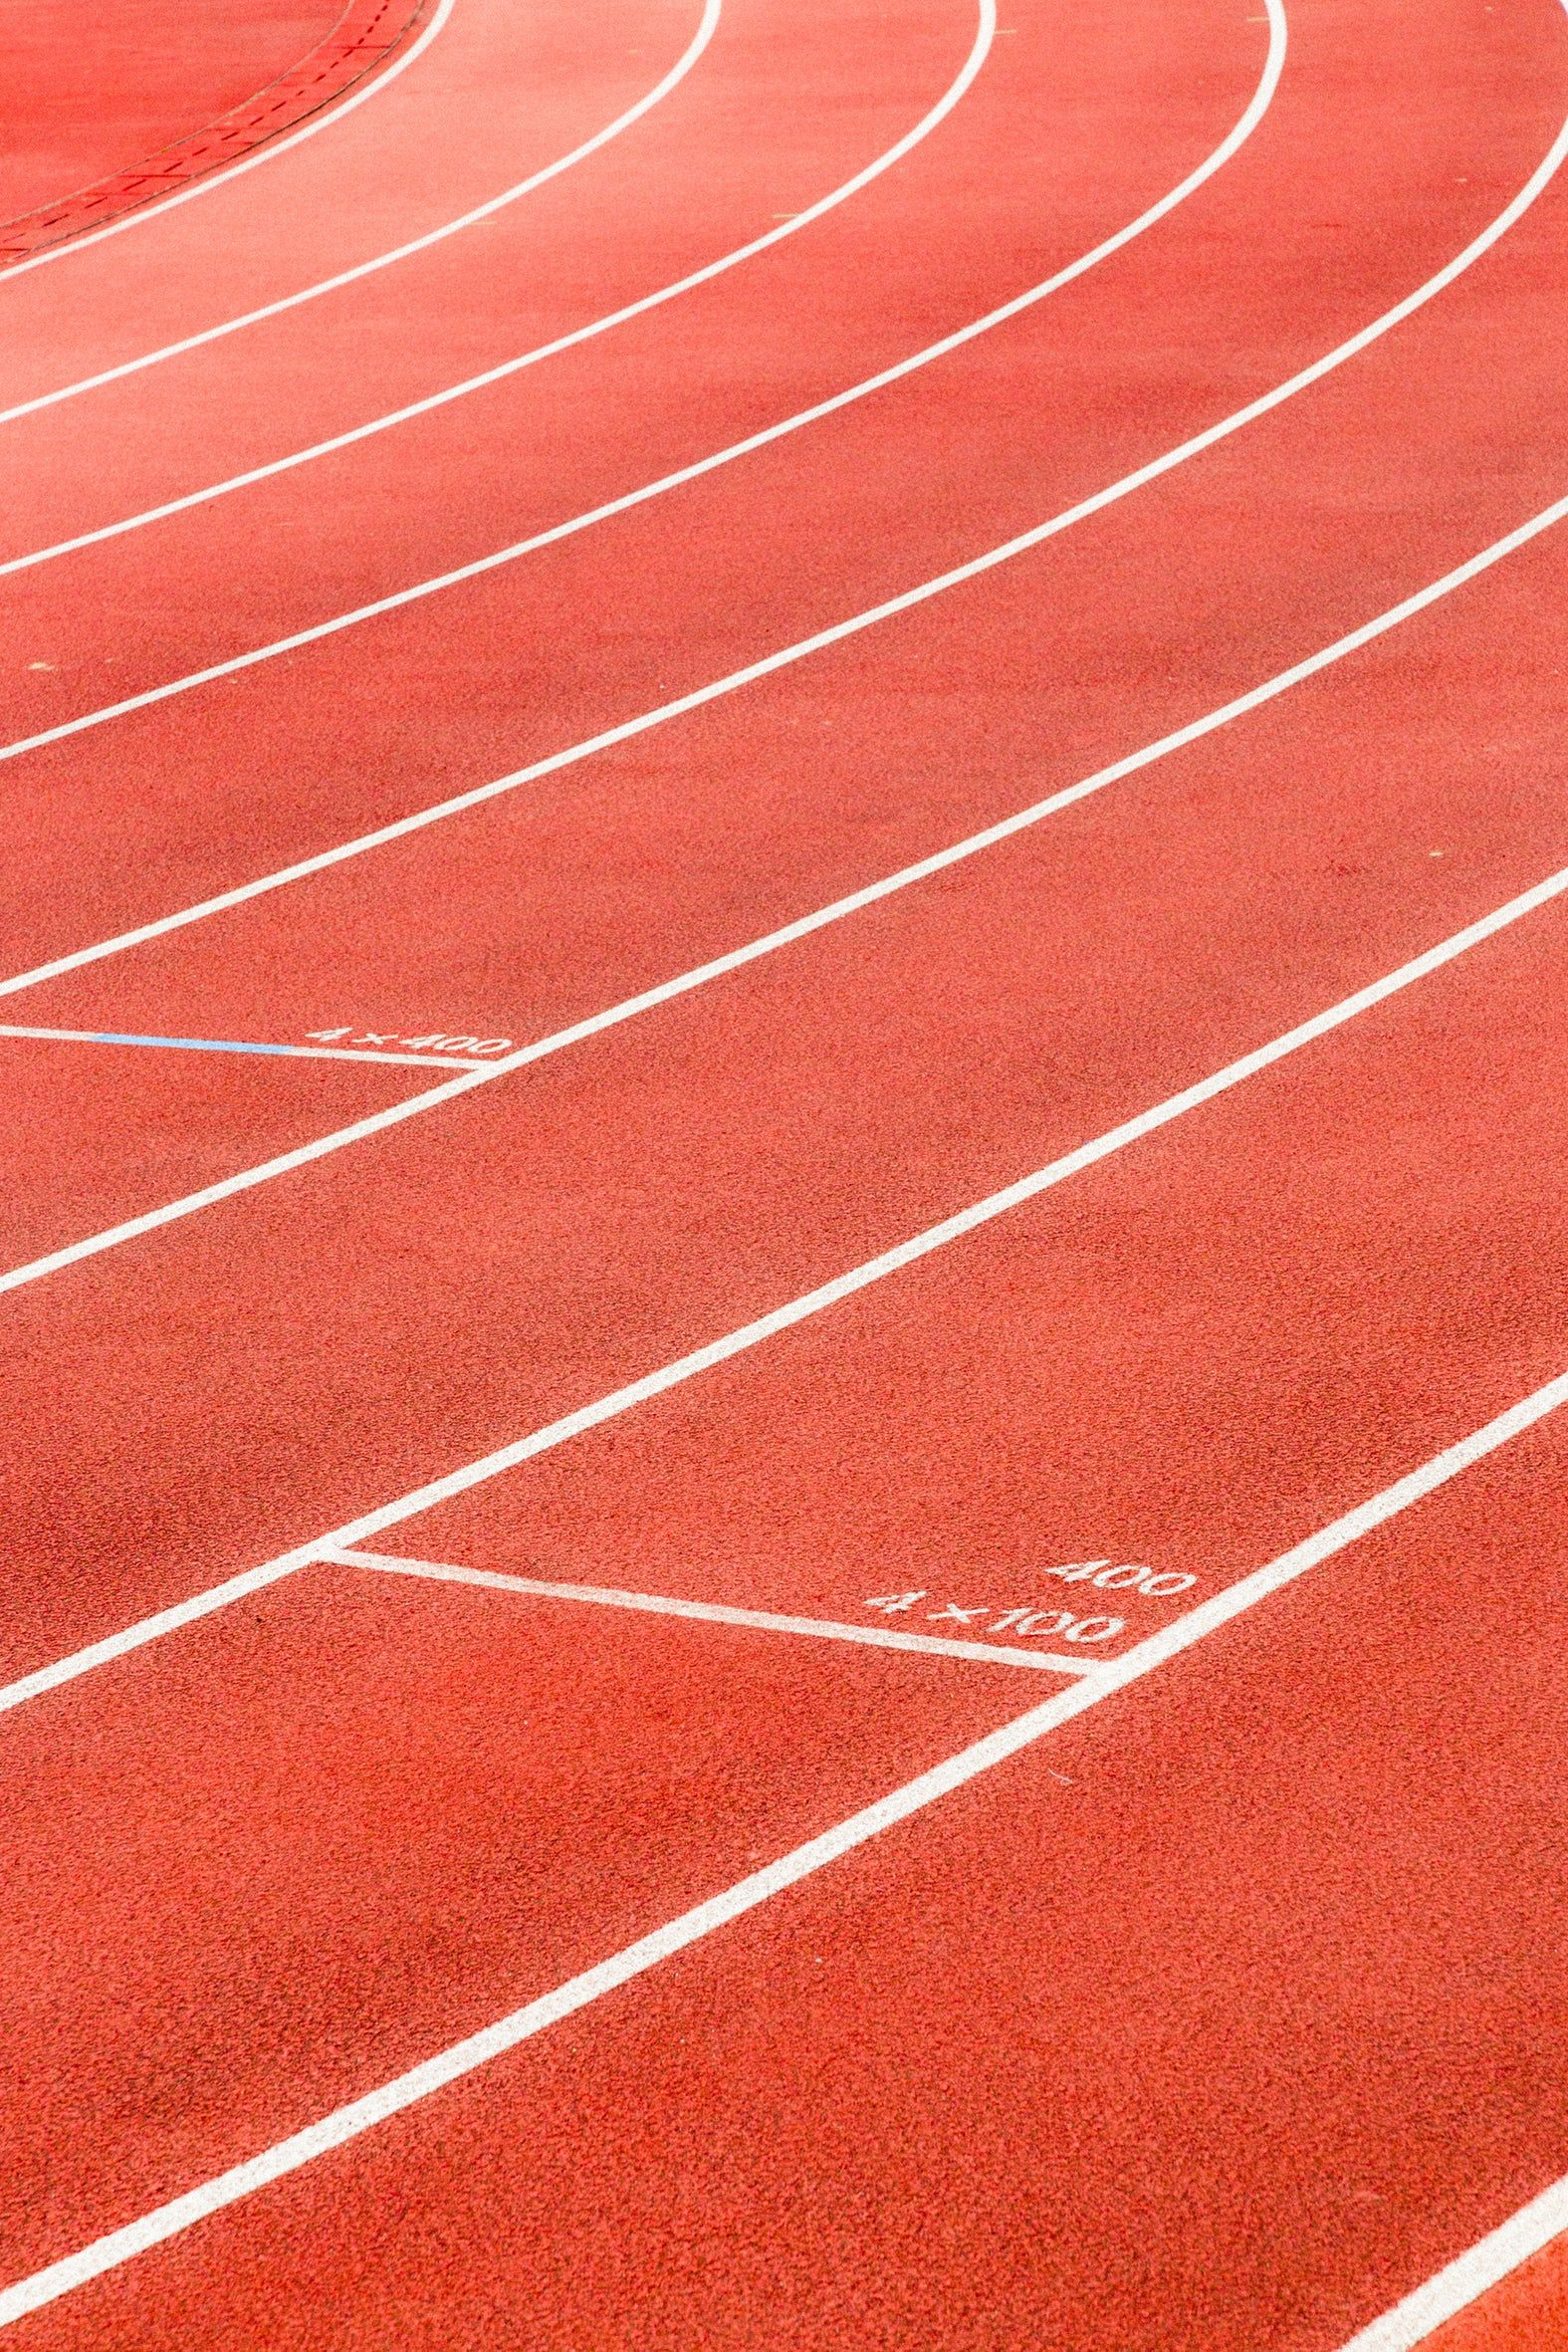 Sports Sport Running Track And Rug Hd Photo By Lysander Yuen Lysanderyuen On Unsplash Sports Images Sports Wallpapers Sports